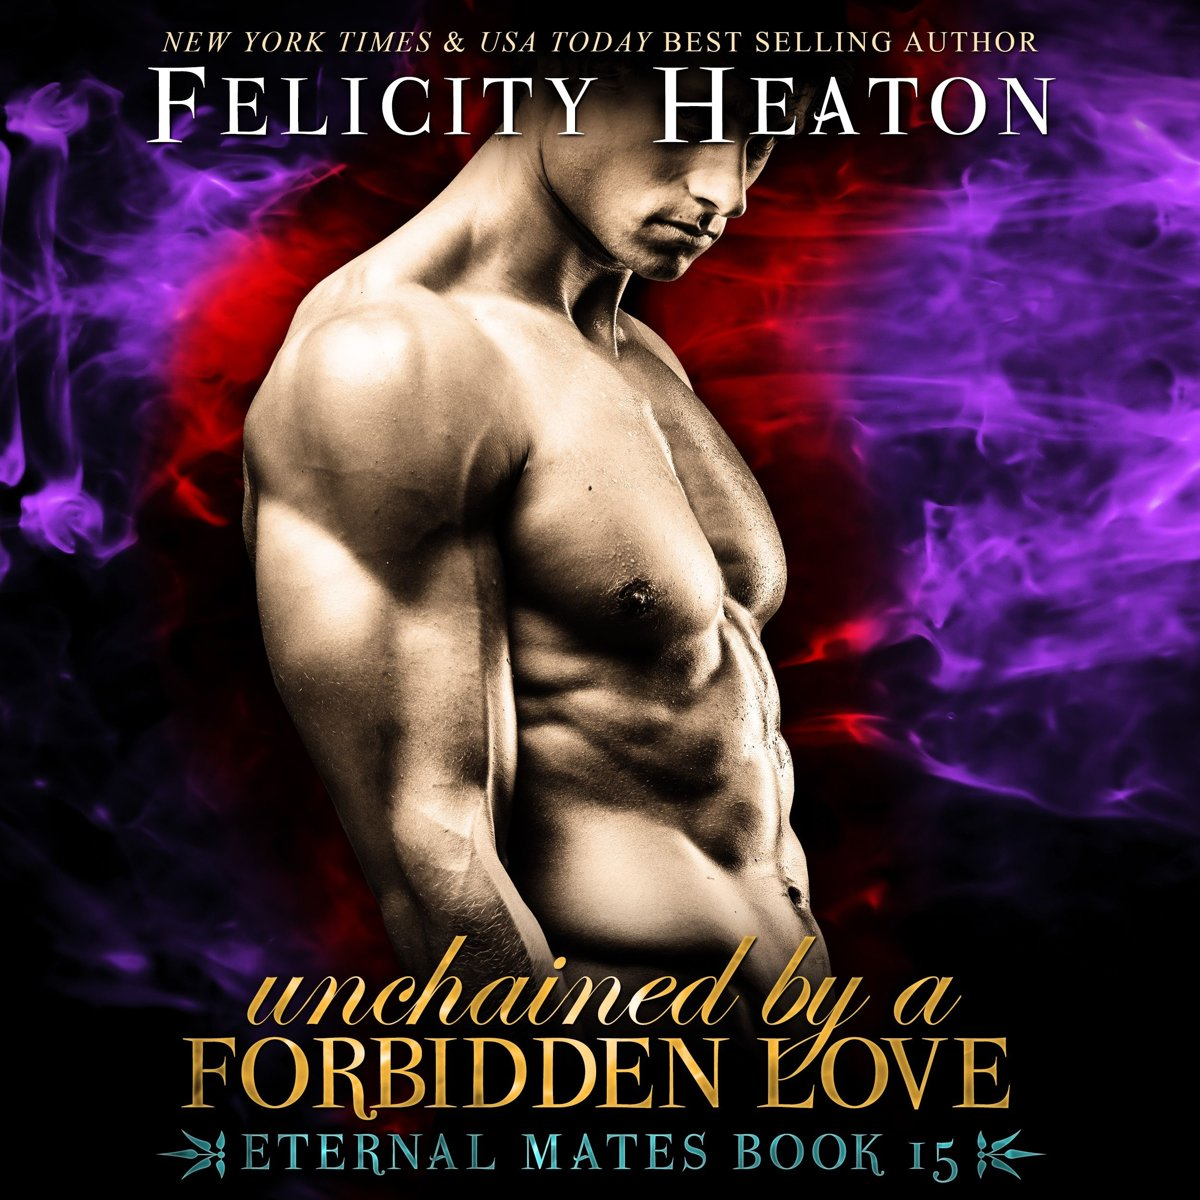 Unchained by a Forbidden Love